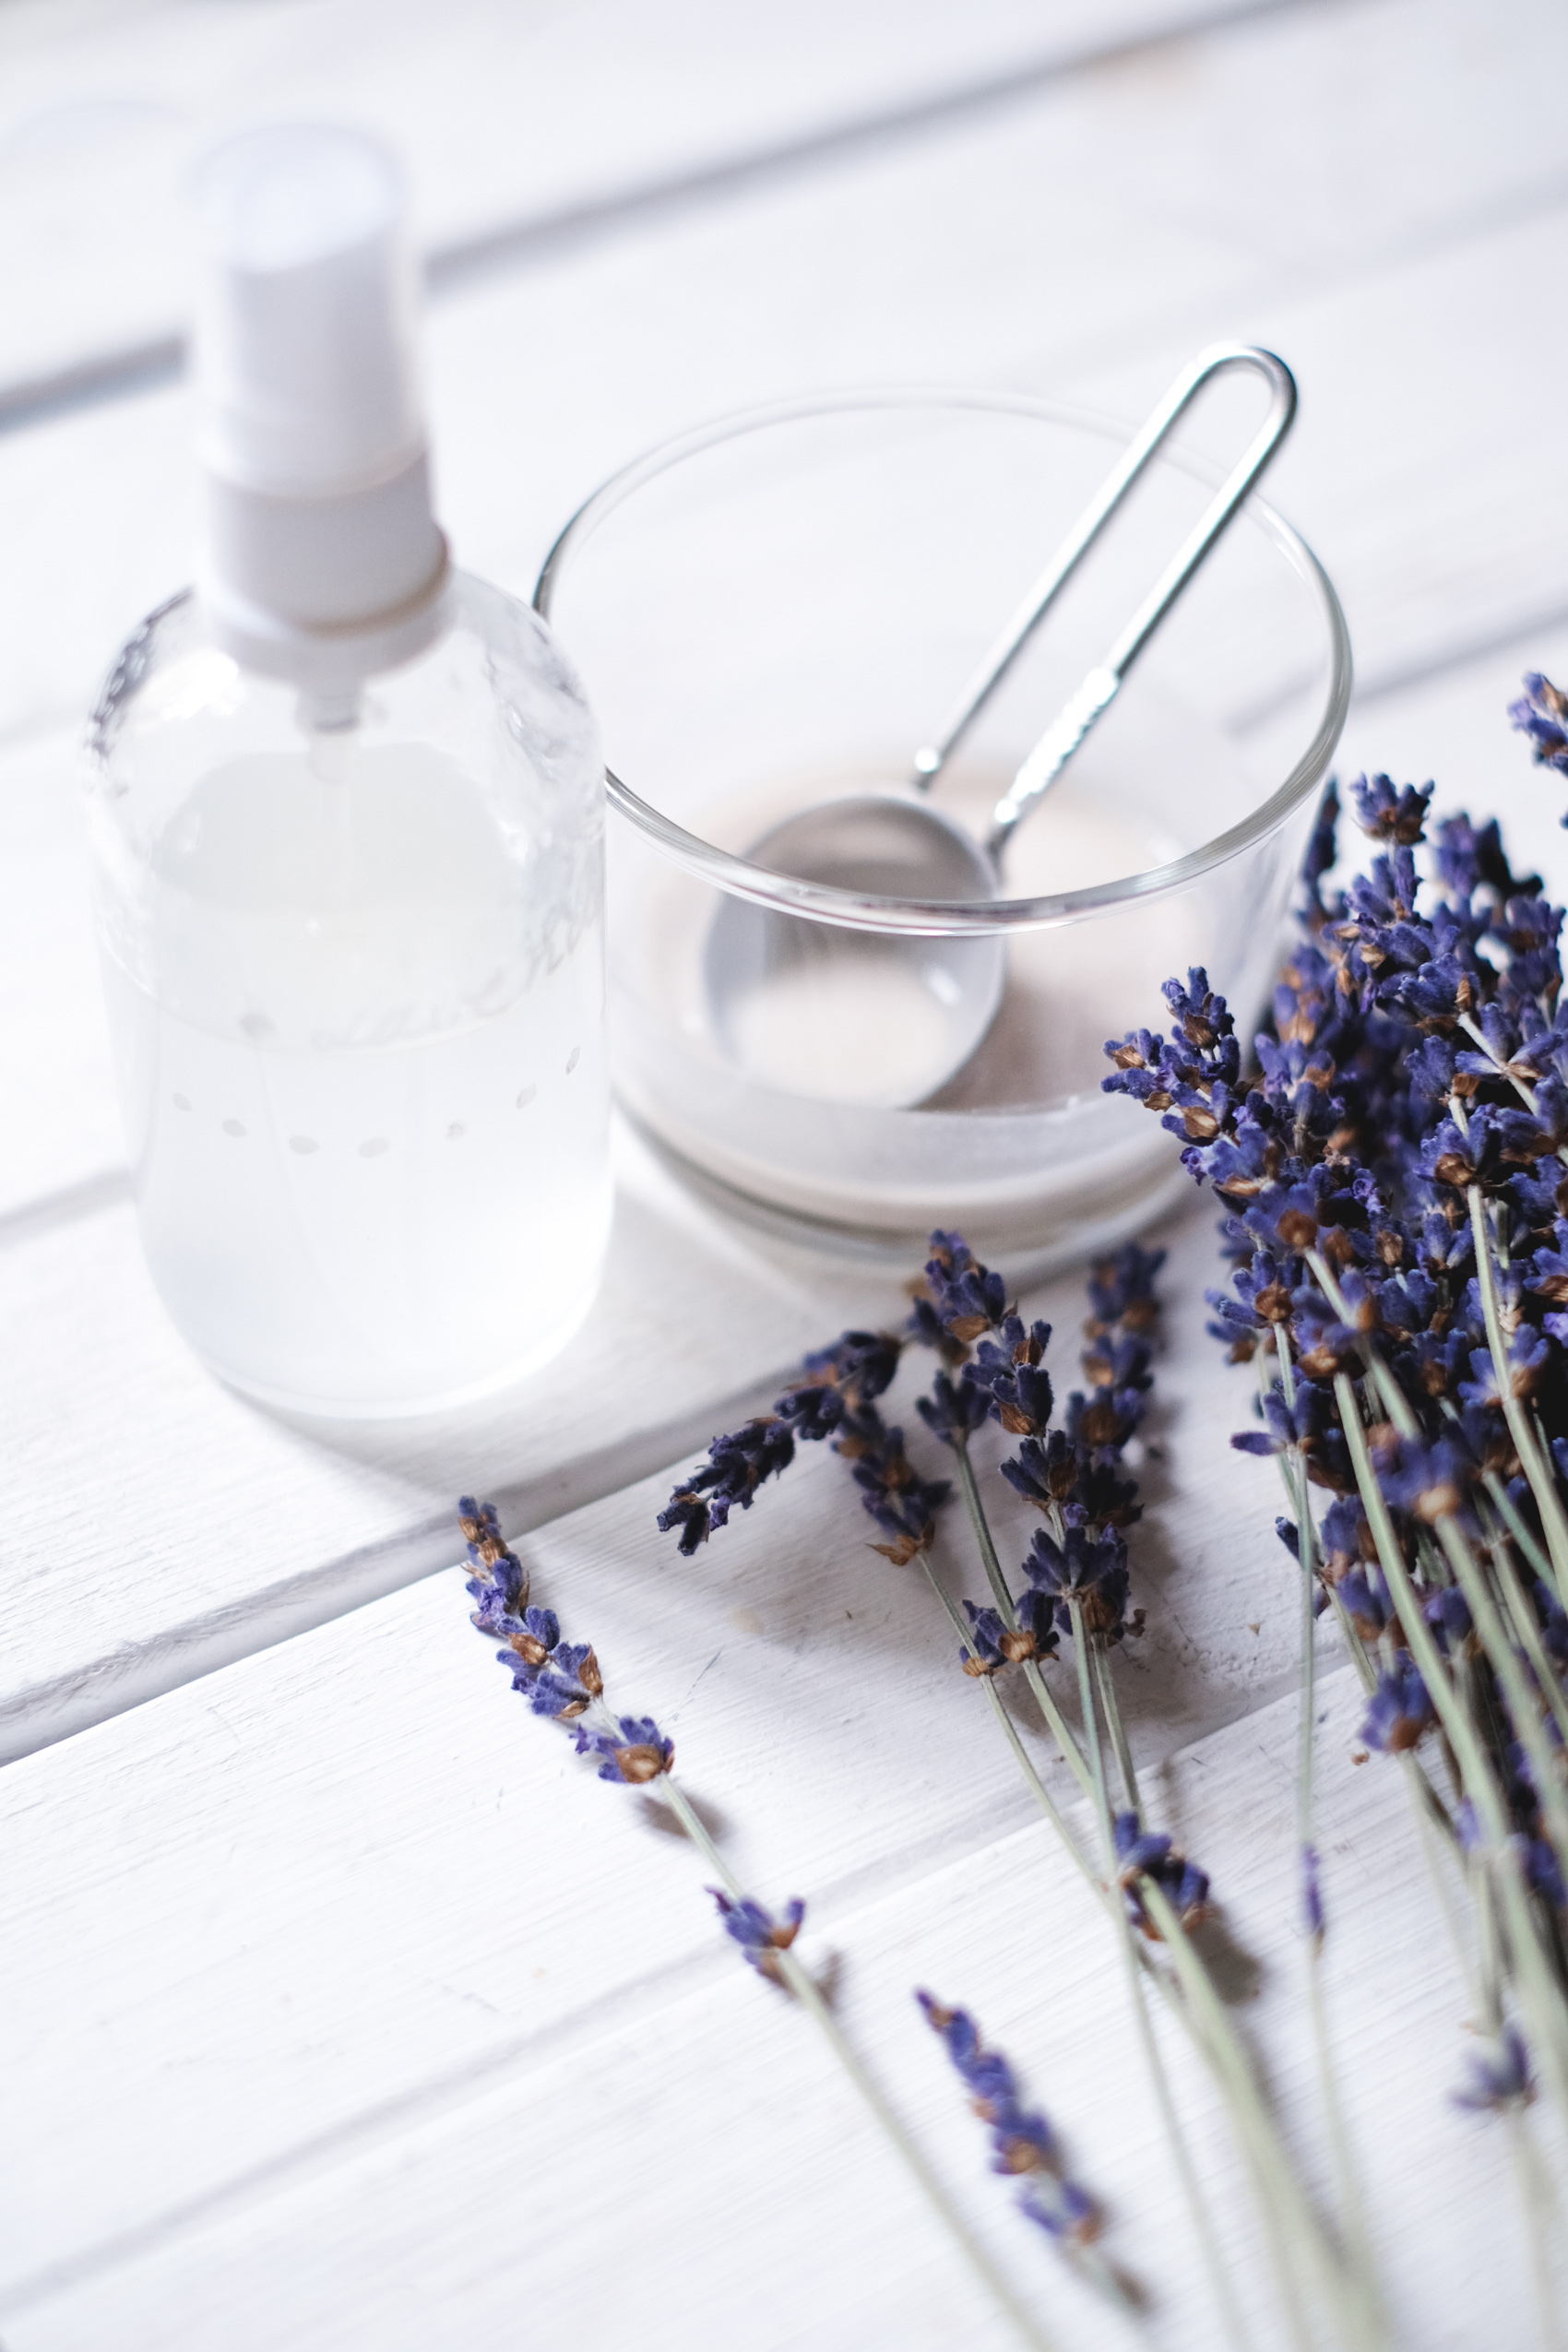 natural scents (5 of 5)